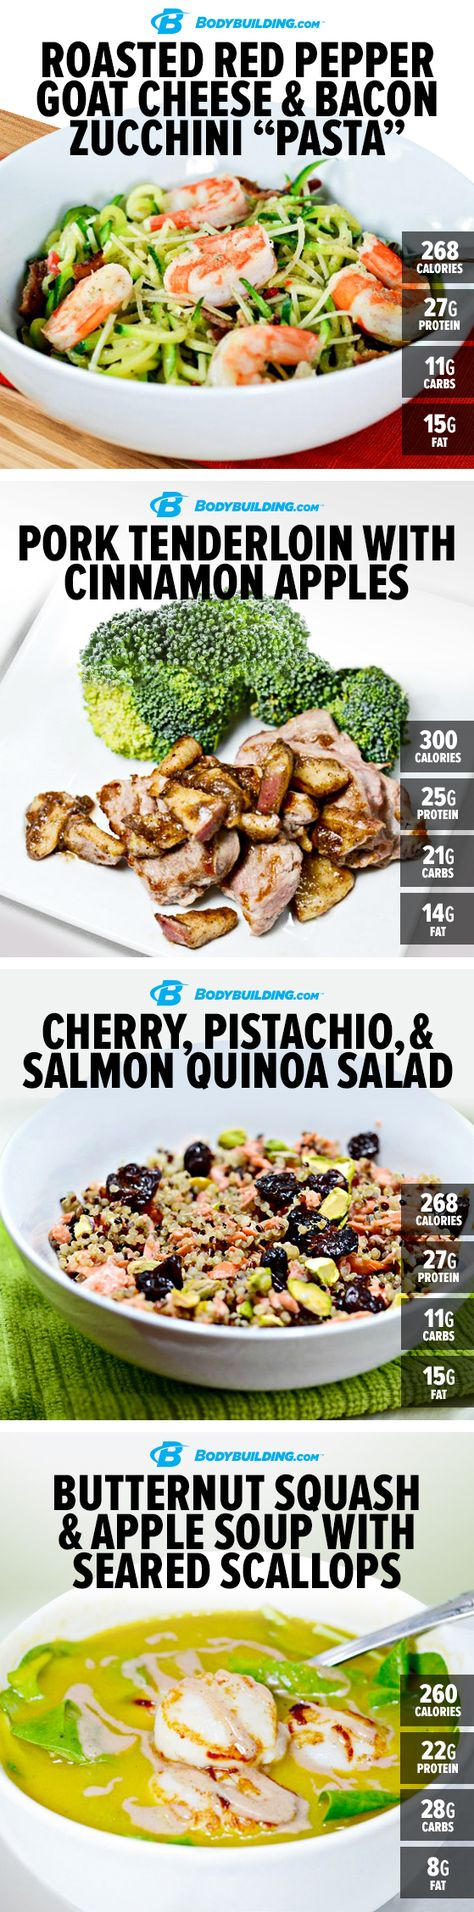 4 EASY HEALTHY WINTER #RECIPES! Cold weather often brings a serious craving for comfort food. Here are 4 savory recipes that will provide the taste of home without the extra calories! Bodybuilding.com